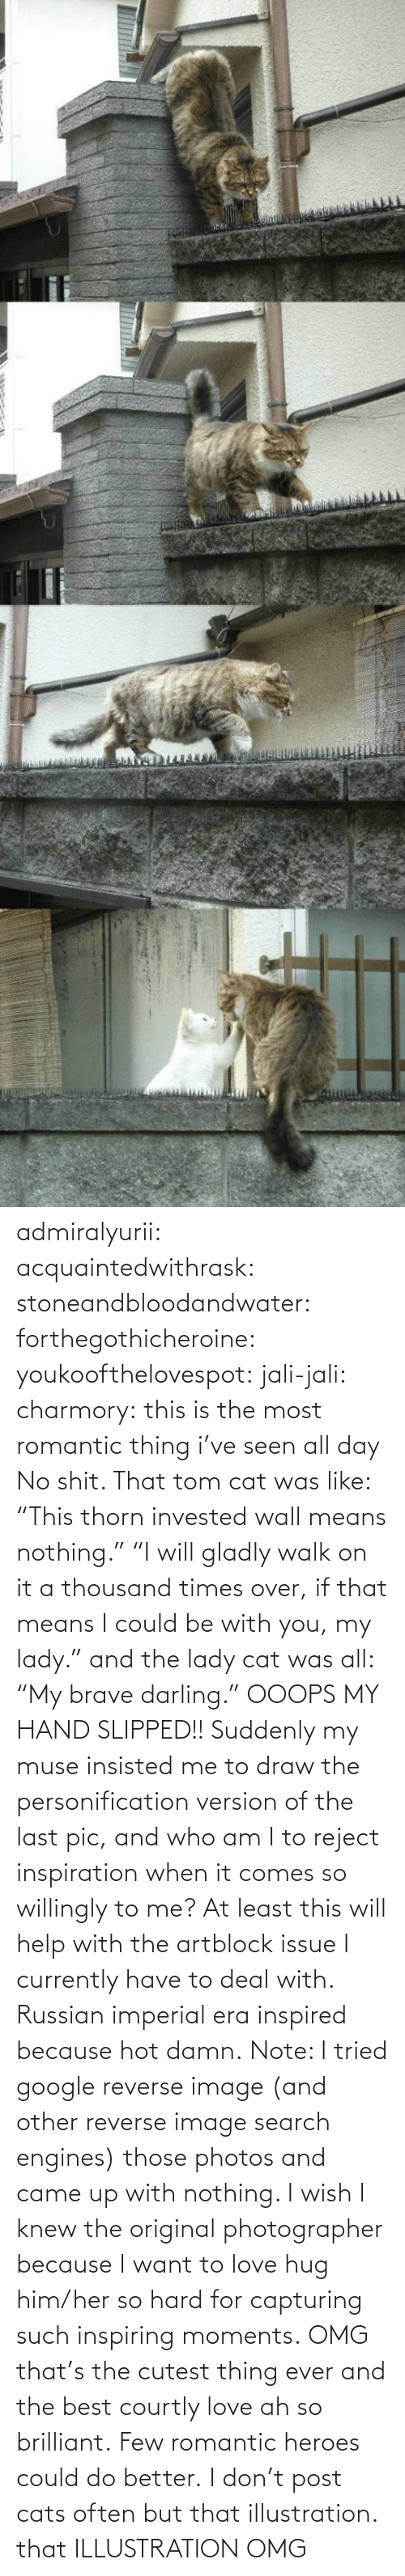 "Search: admiralyurii: acquaintedwithrask:  stoneandbloodandwater:  forthegothicheroine:  youkoofthelovespot:  jali-jali:  charmory:  this is the most romantic thing i've seen all day  No shit. That tom cat was like: ""This thorn invested wall means nothing."" ""I will gladly walk on it a thousand times over, if that means I could be with you, my lady."" and the lady cat was all: ""My brave darling."" OOOPS MY HAND SLIPPED!!  Suddenly my muse insisted me to draw the personification version of the last pic, and who am I to reject inspiration when it comes so willingly to me? At least this will help with the artblock issue I currently have to deal with. Russian imperial era inspired because hot damn. Note: I tried google reverse image (and other reverse image search engines) those photos and came up with nothing. I wish I knew the original photographer because I want to love hug him/her so hard for capturing such inspiring moments.  OMG that's the cutest thing ever and the best courtly love ah so brilliant.  Few romantic heroes could do better.  I don't post cats often but that illustration.  that ILLUSTRATION    OMG"